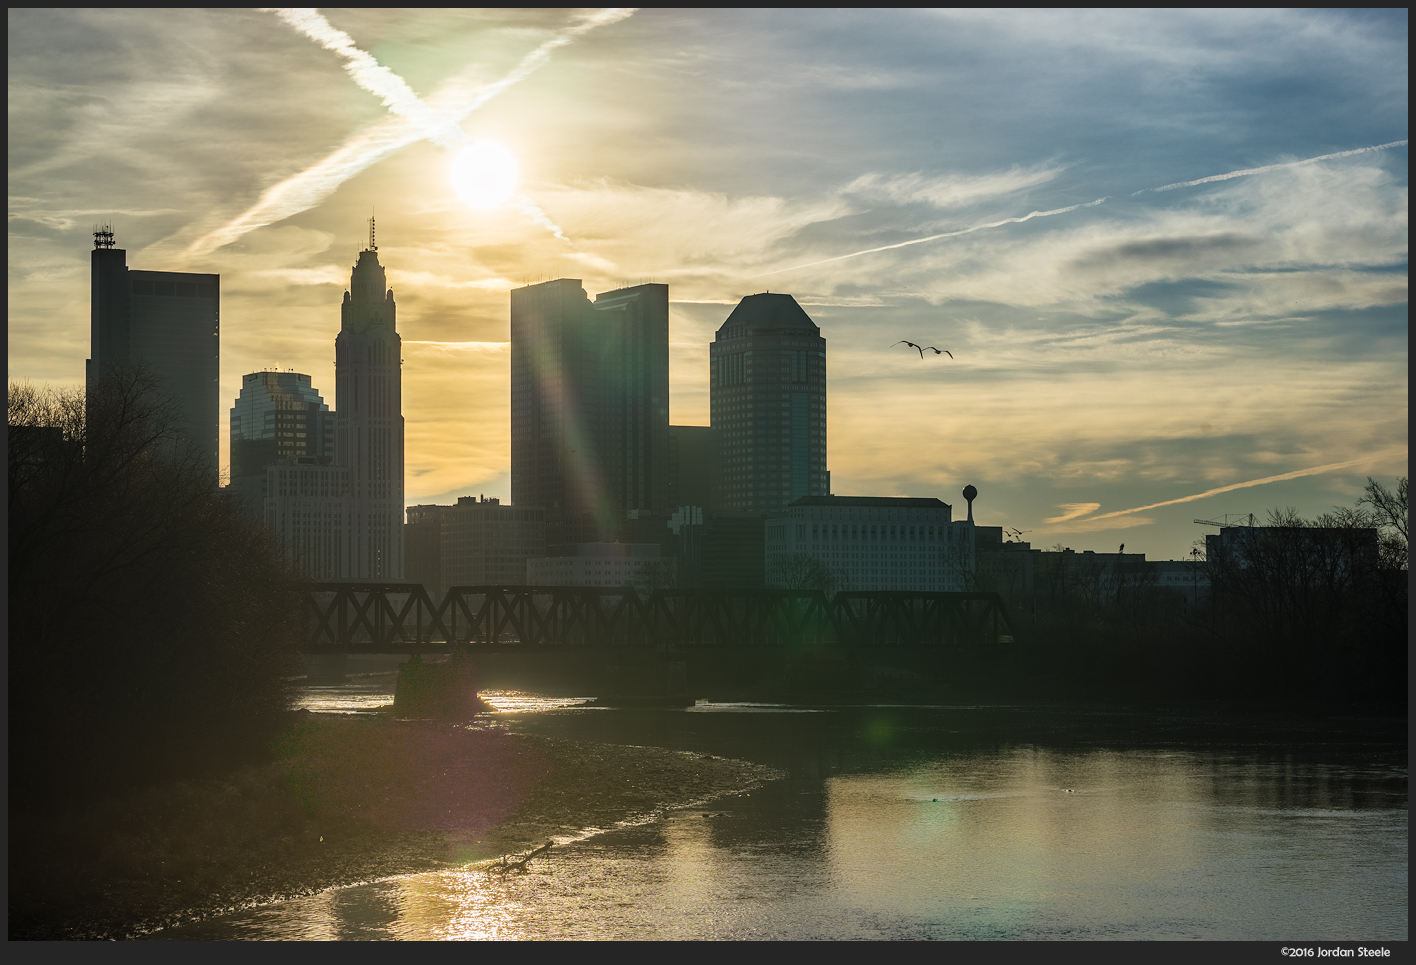 Columbus Sunrise - Sony A7 II with Sony FE 70-200mm f/4 G OSS @